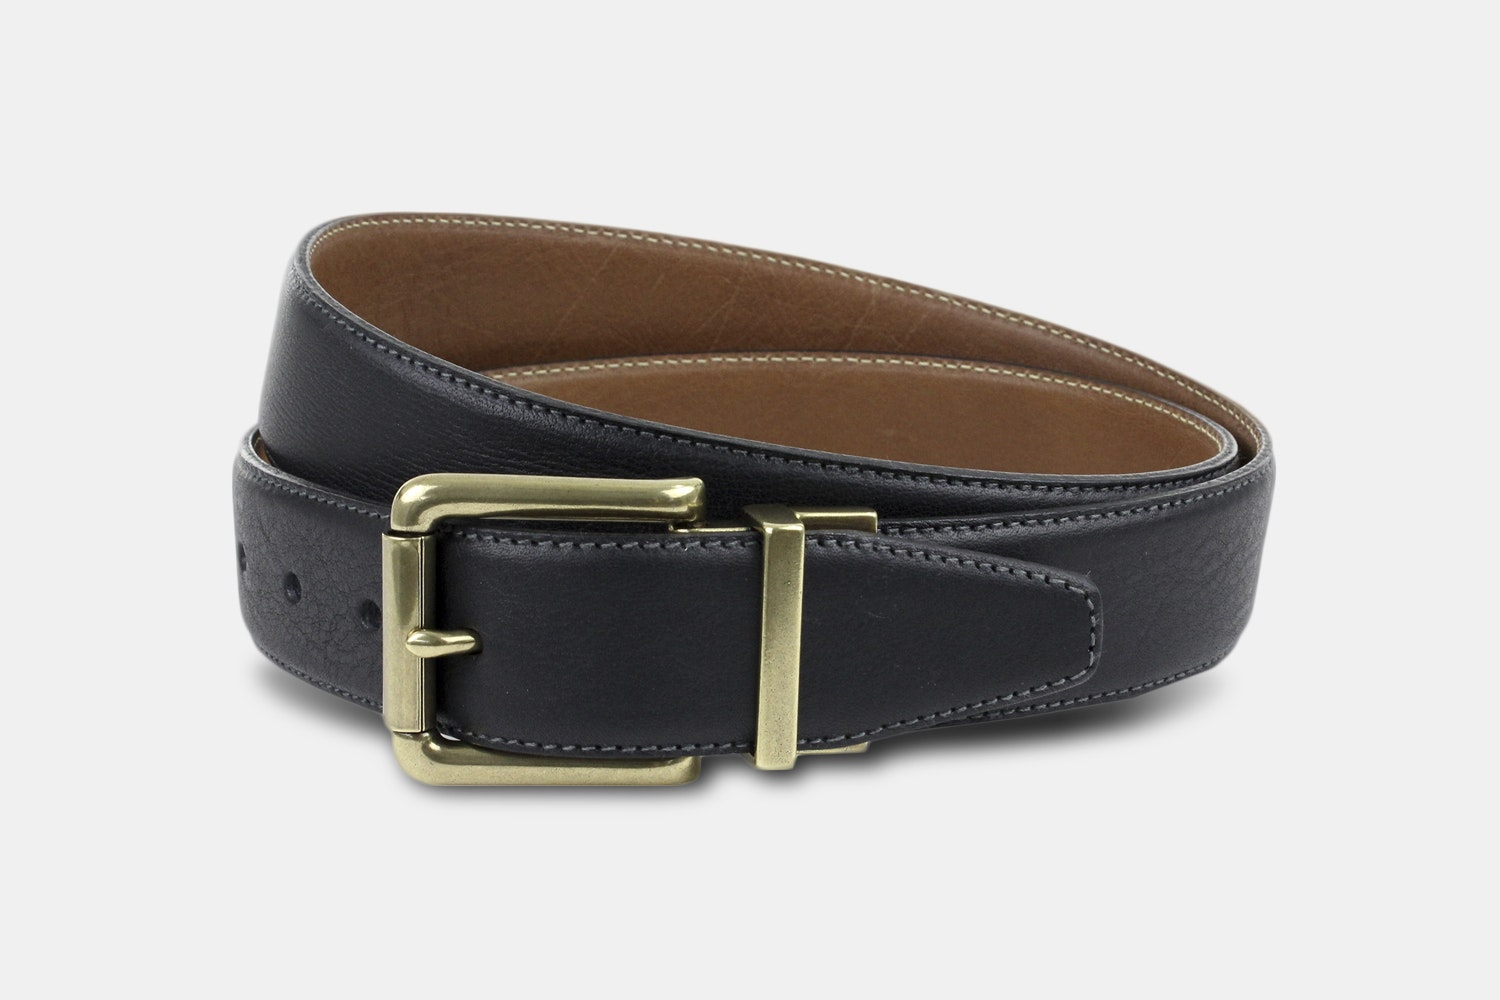 The British Belt Co. Gunthorpe Reversible Belt